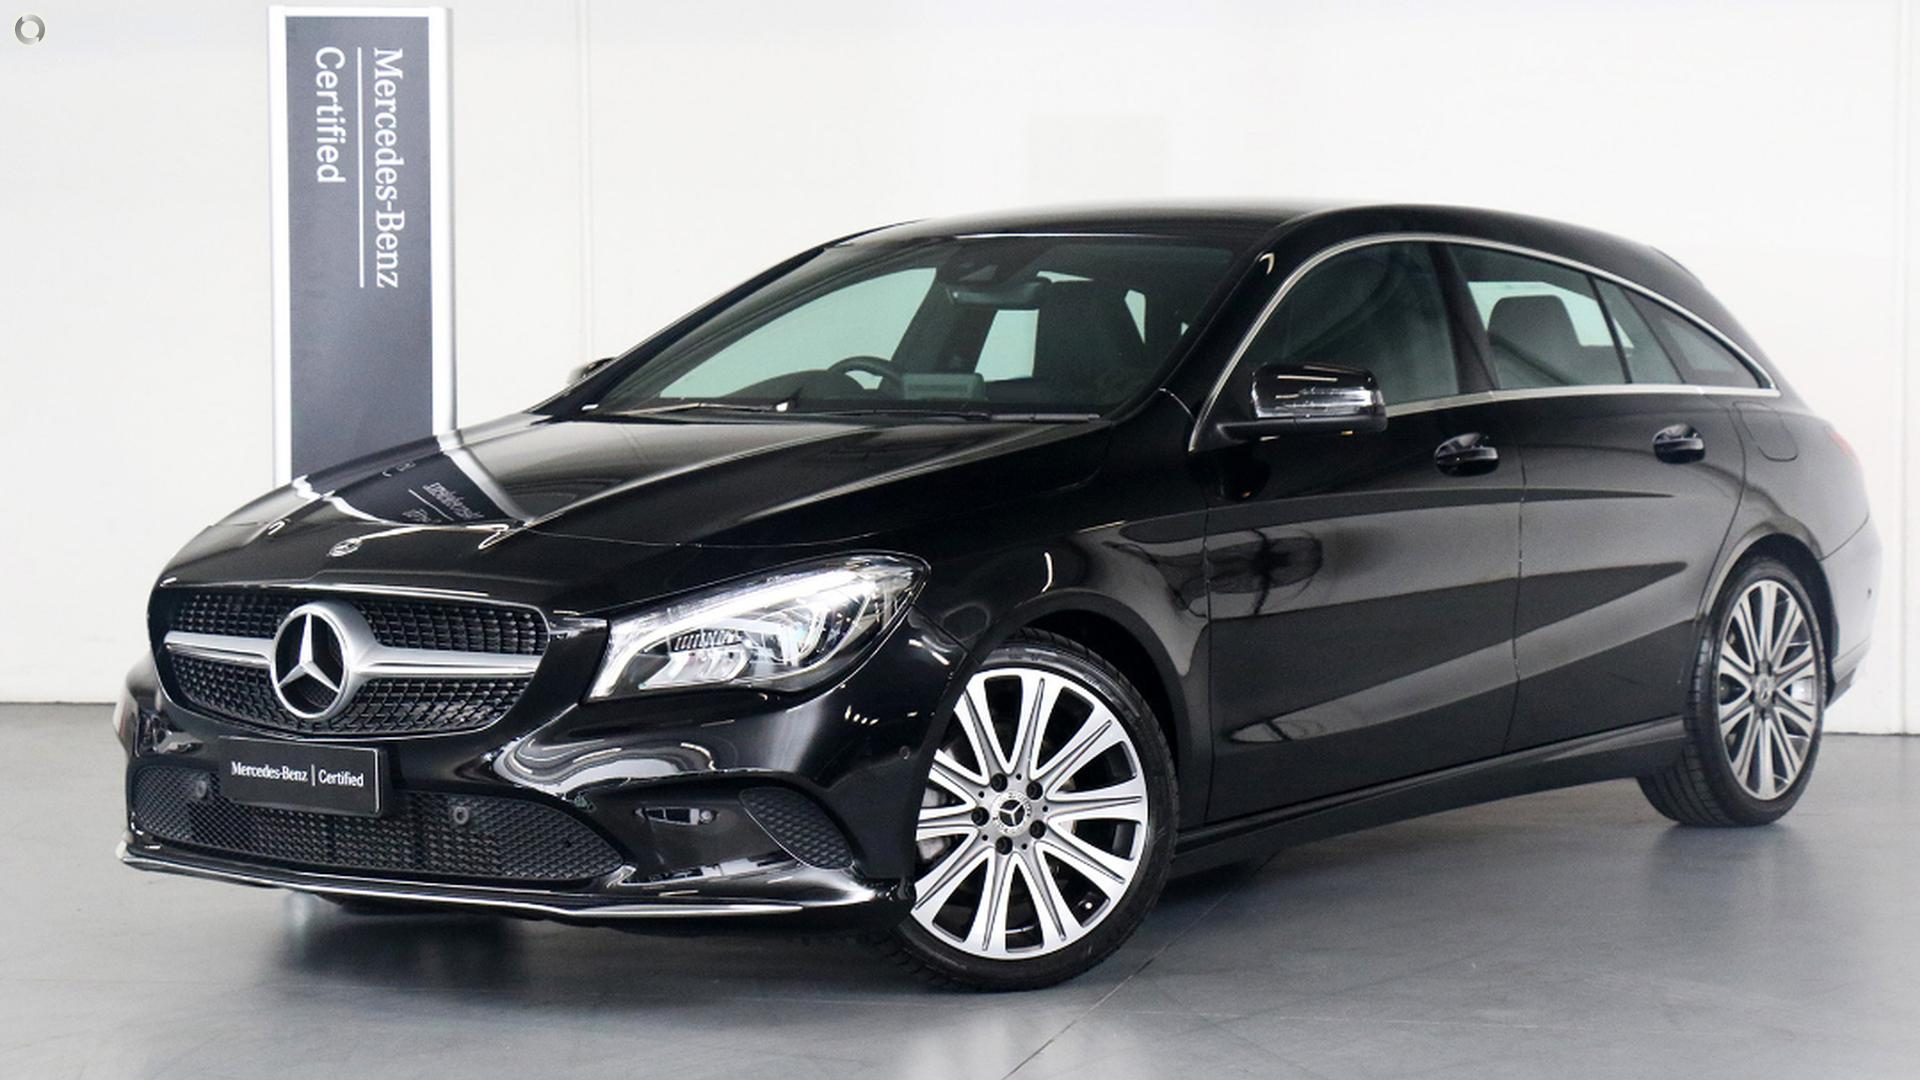 2018 Mercedes-Benz CLA-CLASS Shooting Brake